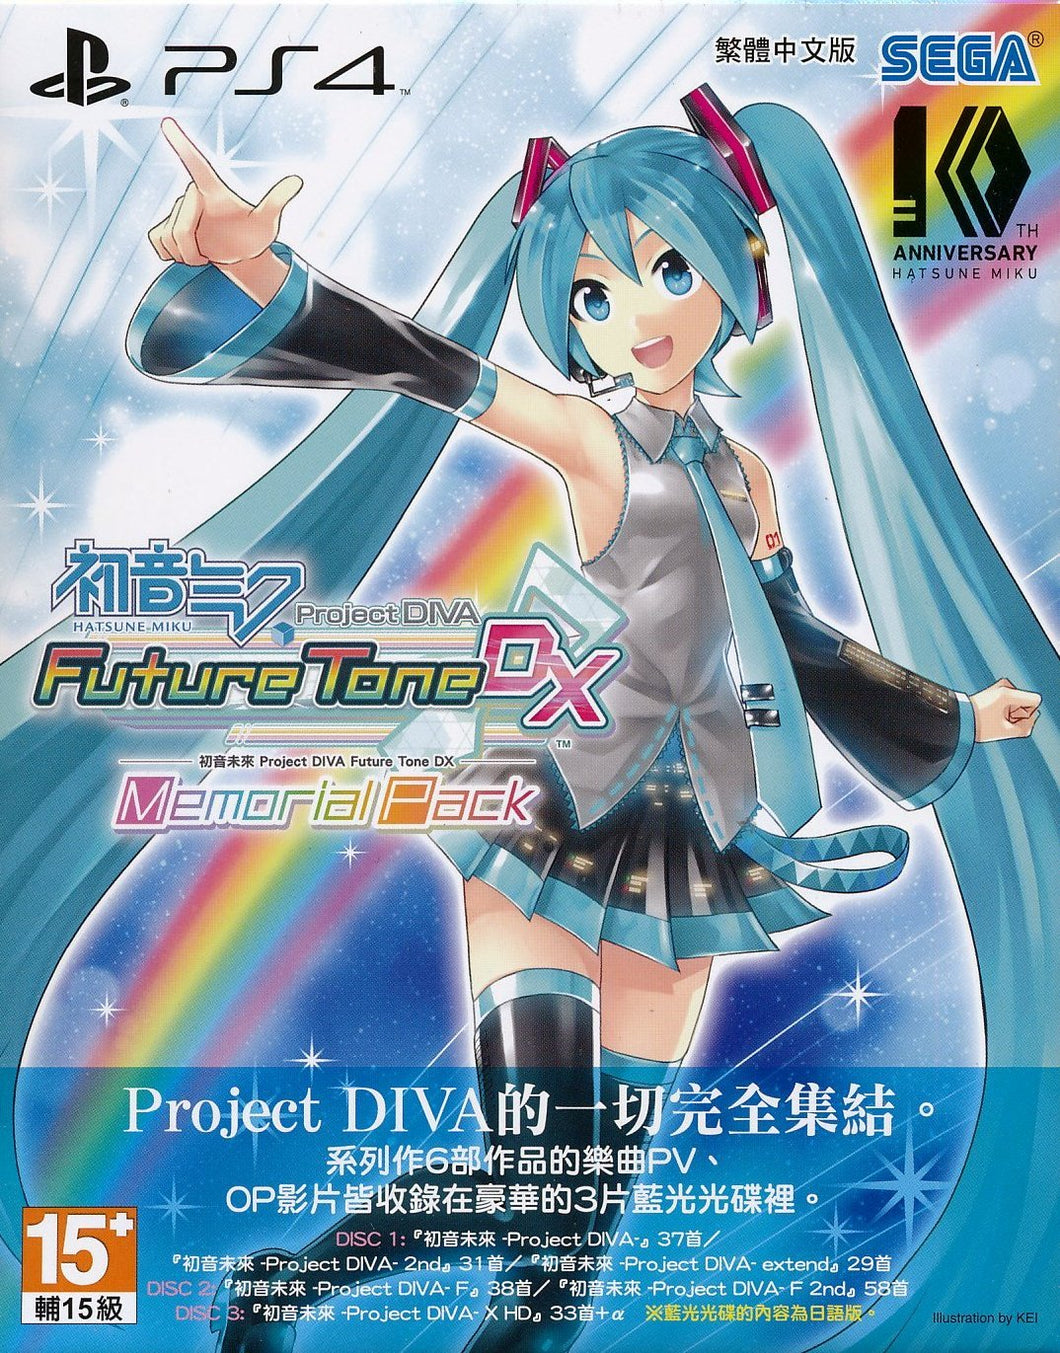 PS4 Hatsune Miku Project DIVA Future Tone DX (Memorial Pack) Limited Edition (Chinese & Japanese subtitle) - PlayStation 4 [PS4] - Area 399 Hachune Rage